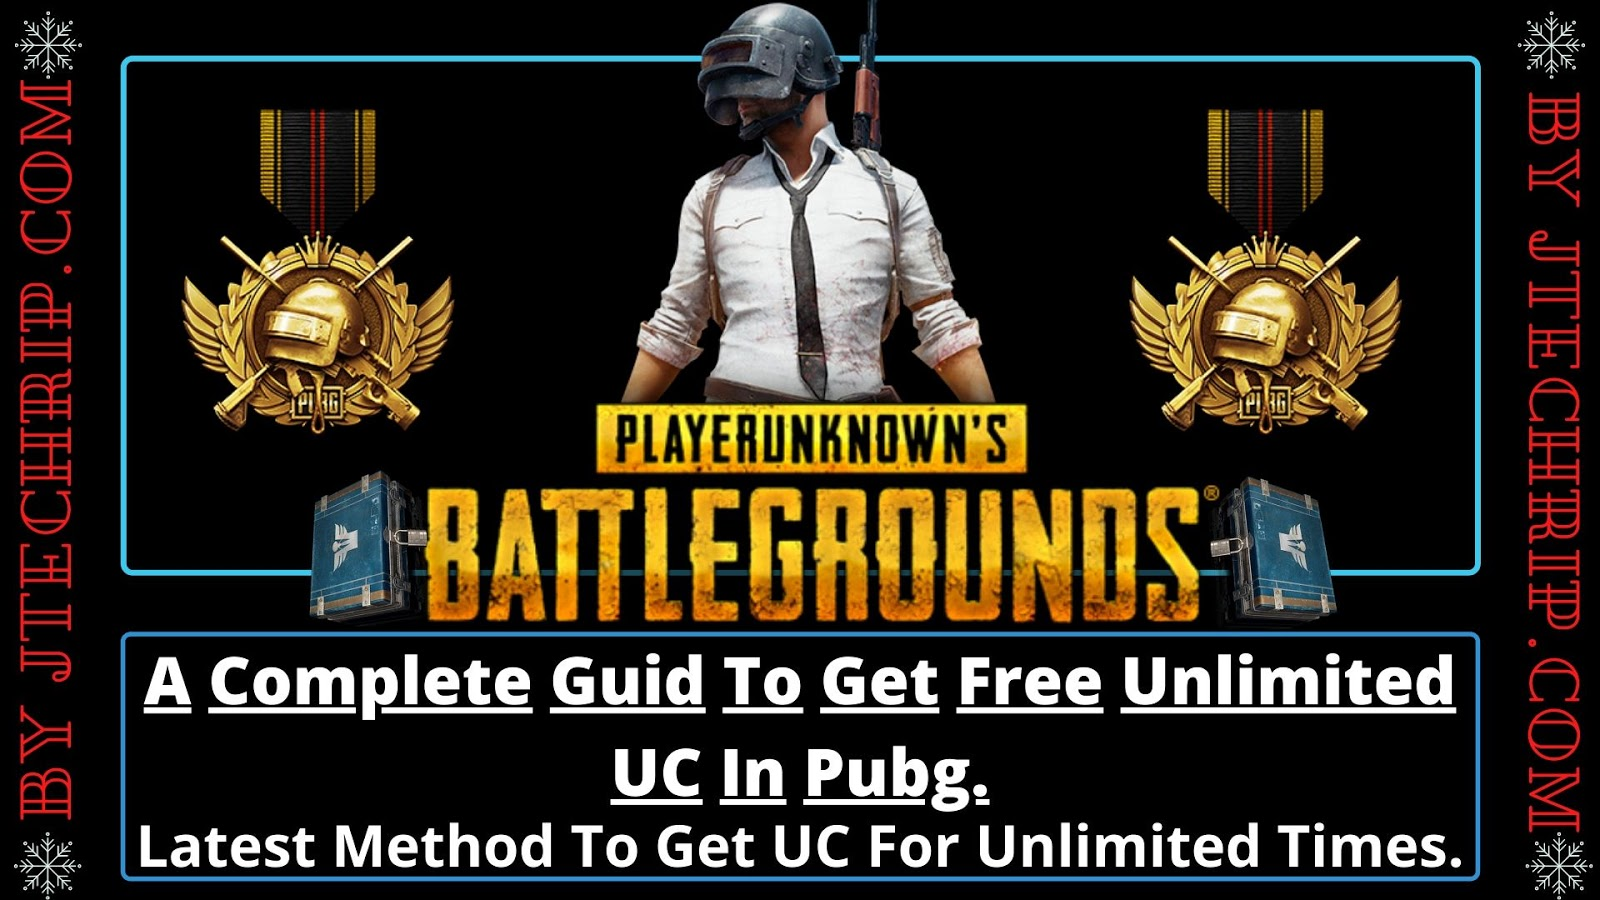 A Complete Guide To Get Free Unlimited UC In Pubg.